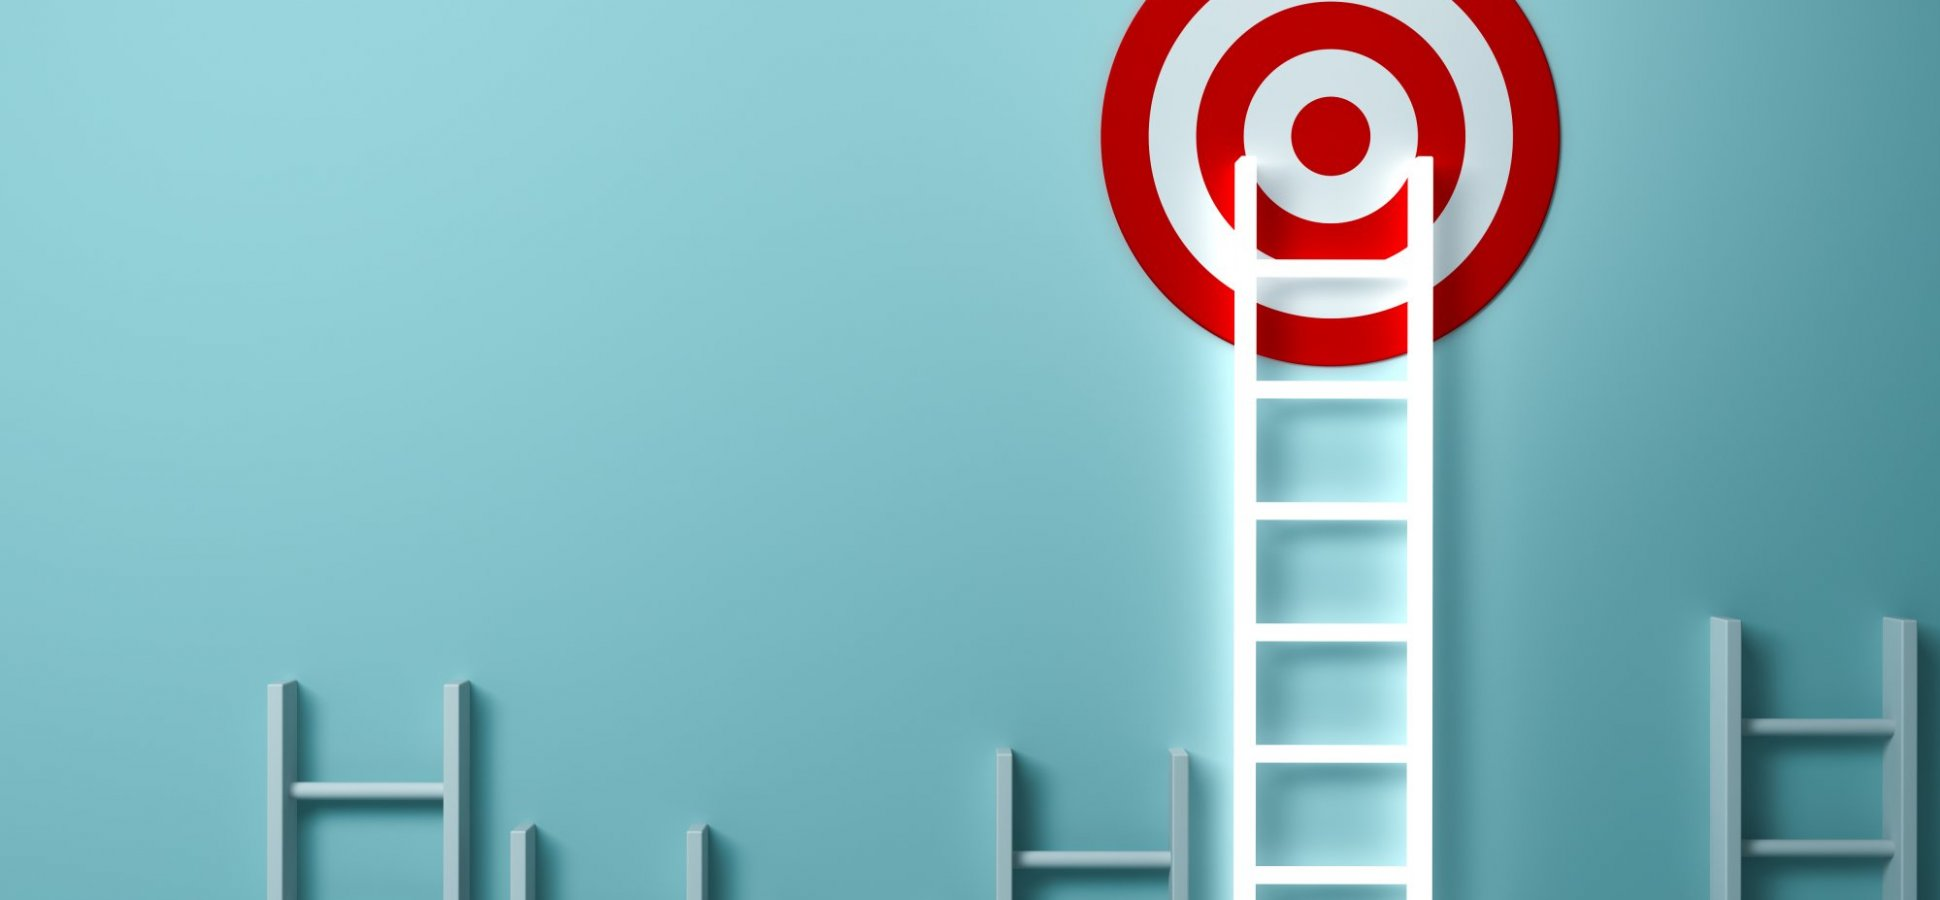 Help Your Team Deliver Results With This Goal-Setting Approach